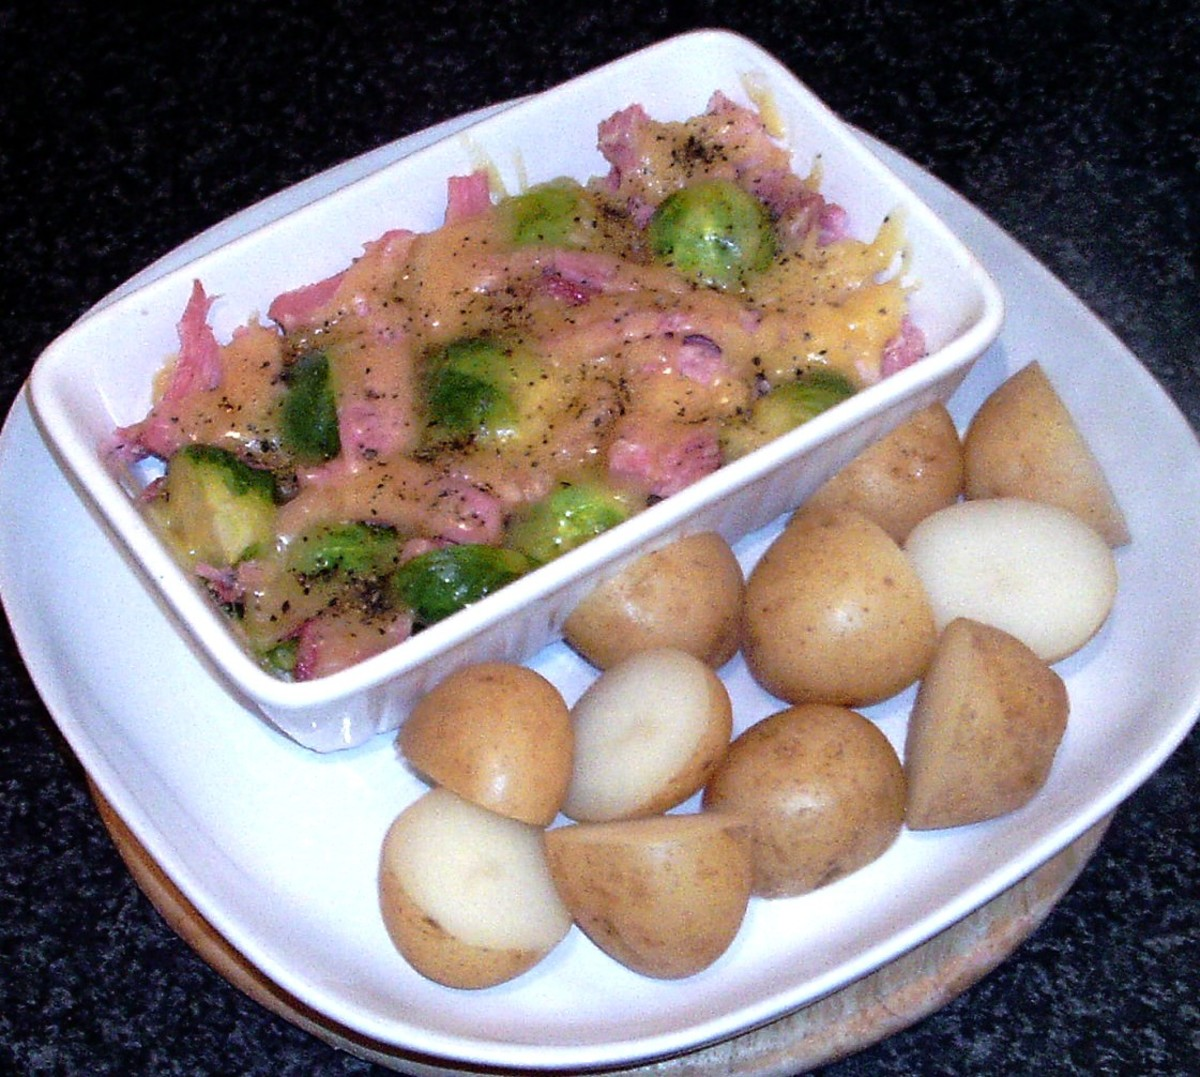 Cheese and ham Brussels sprouts are served with new potatoes